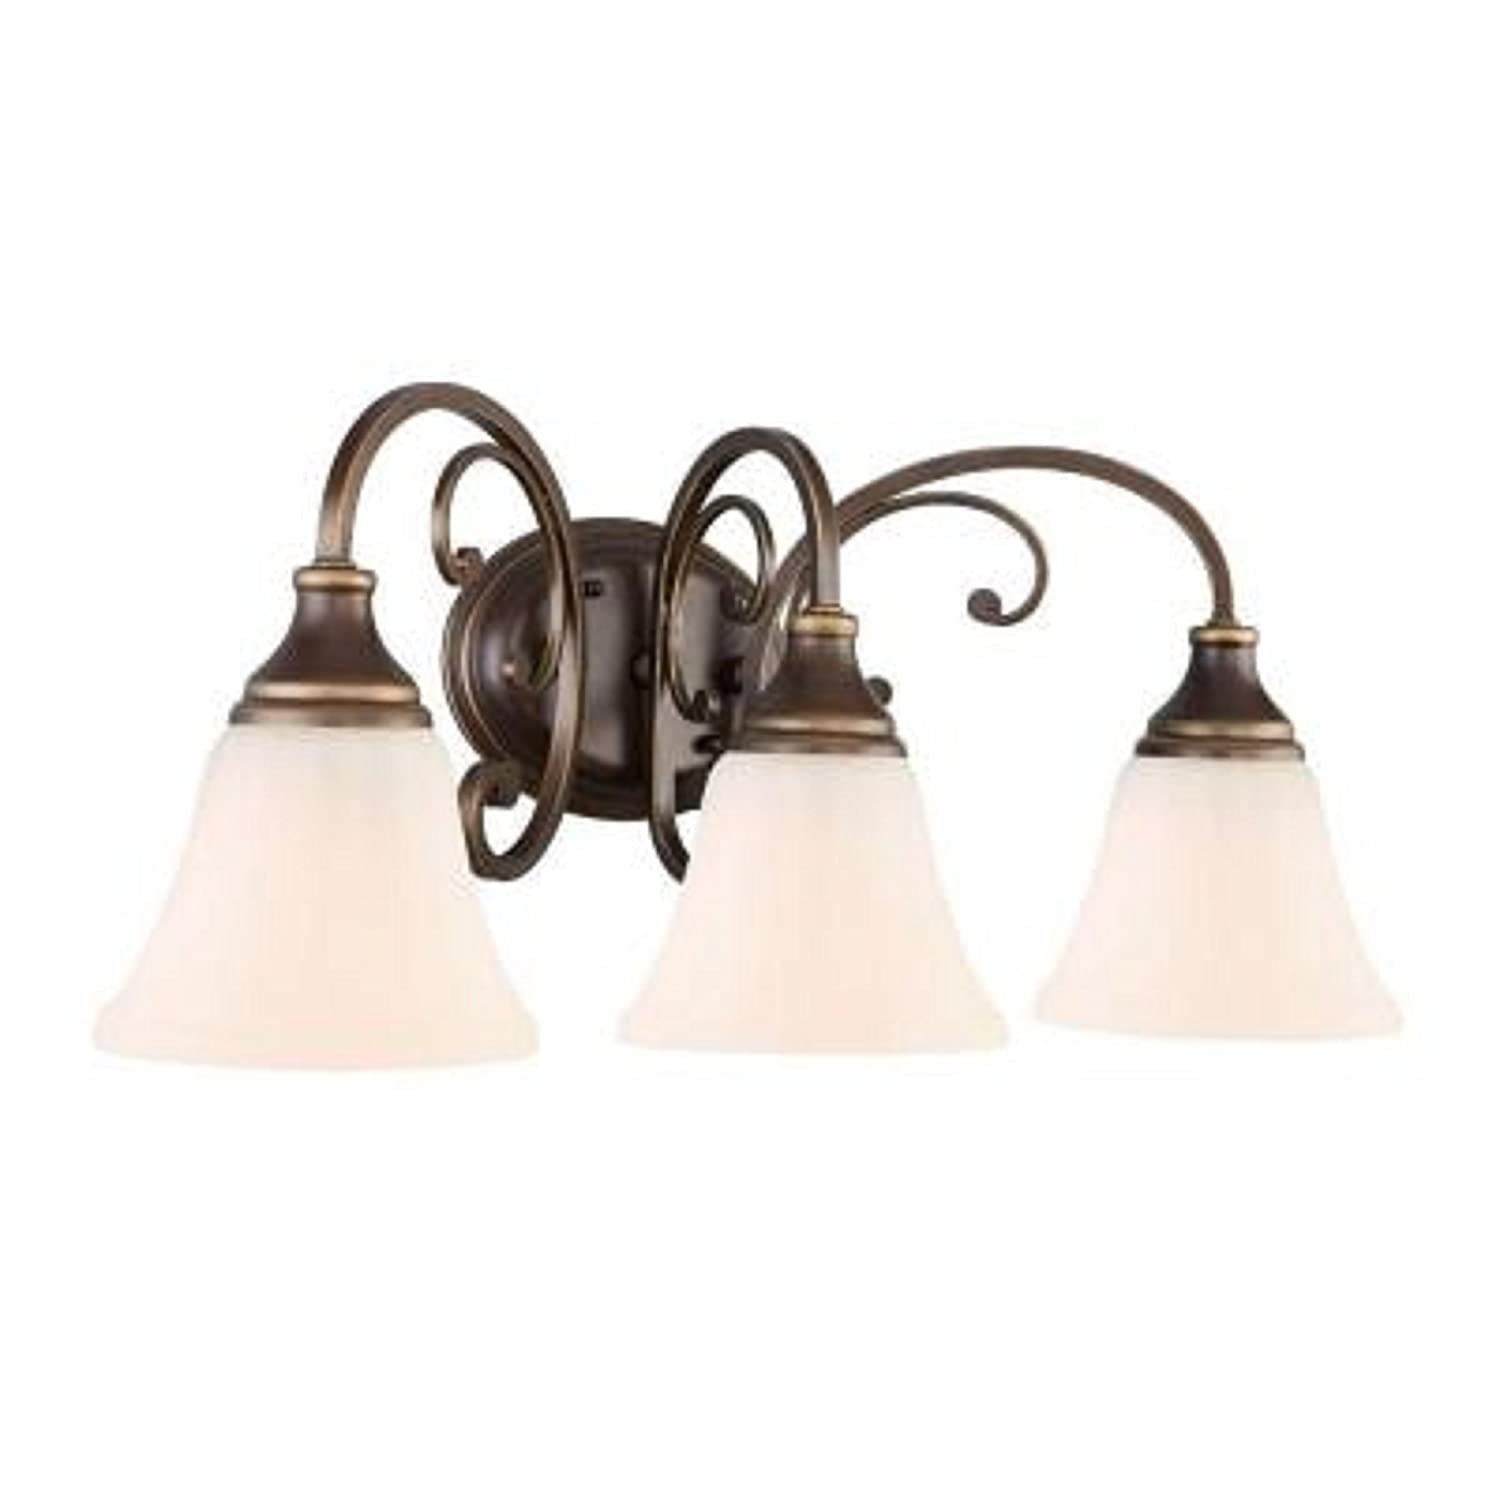 Hampton Bay Vanity Lights Bronze : Hampton Bay Somerset 3-light Bronze Vanity 60%OFF - www.proaluminium.co.za